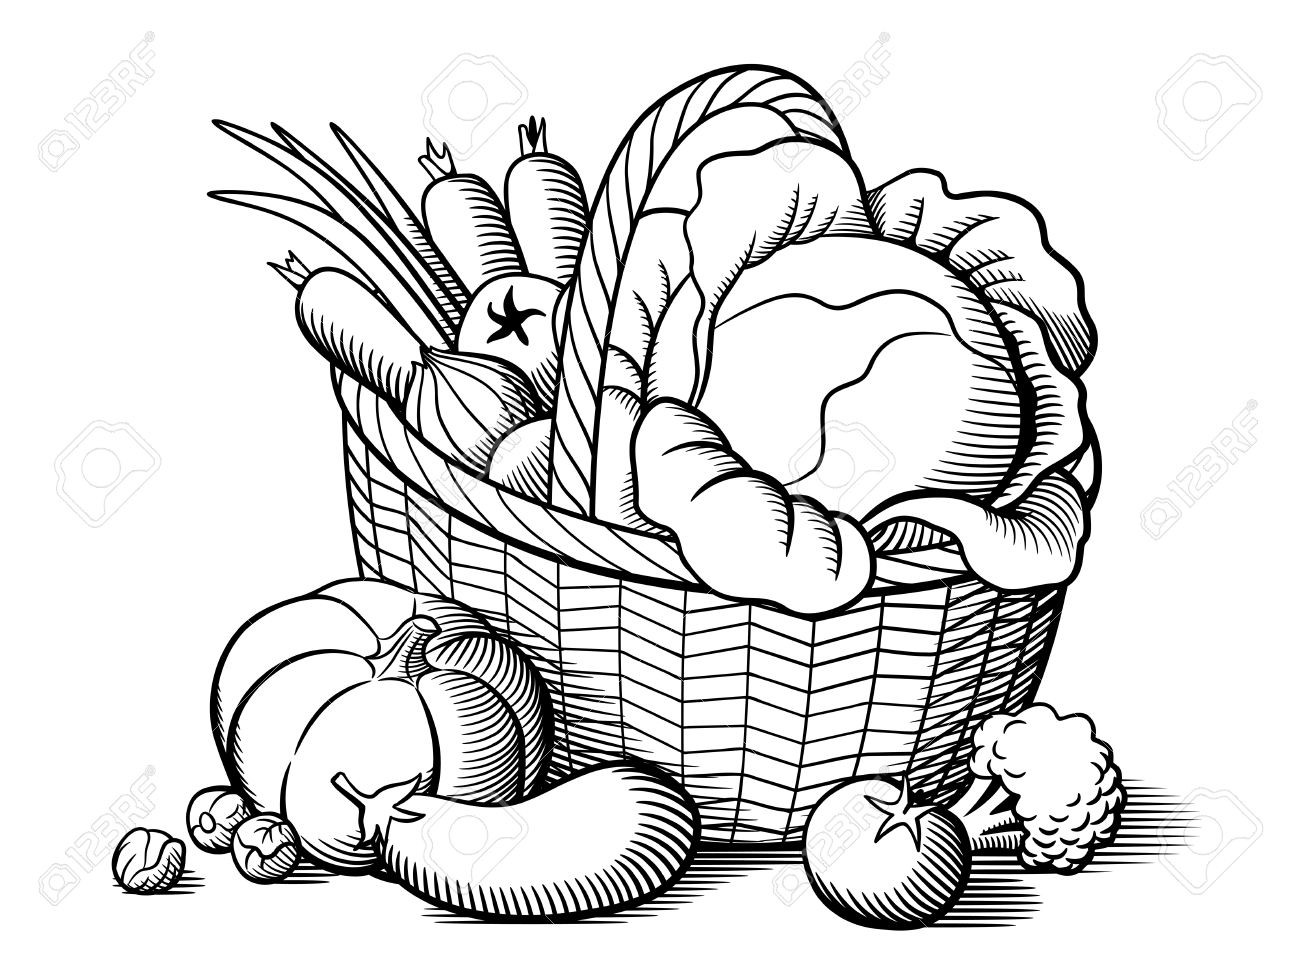 1300x974 Vegetables Basket Clipart Black And White